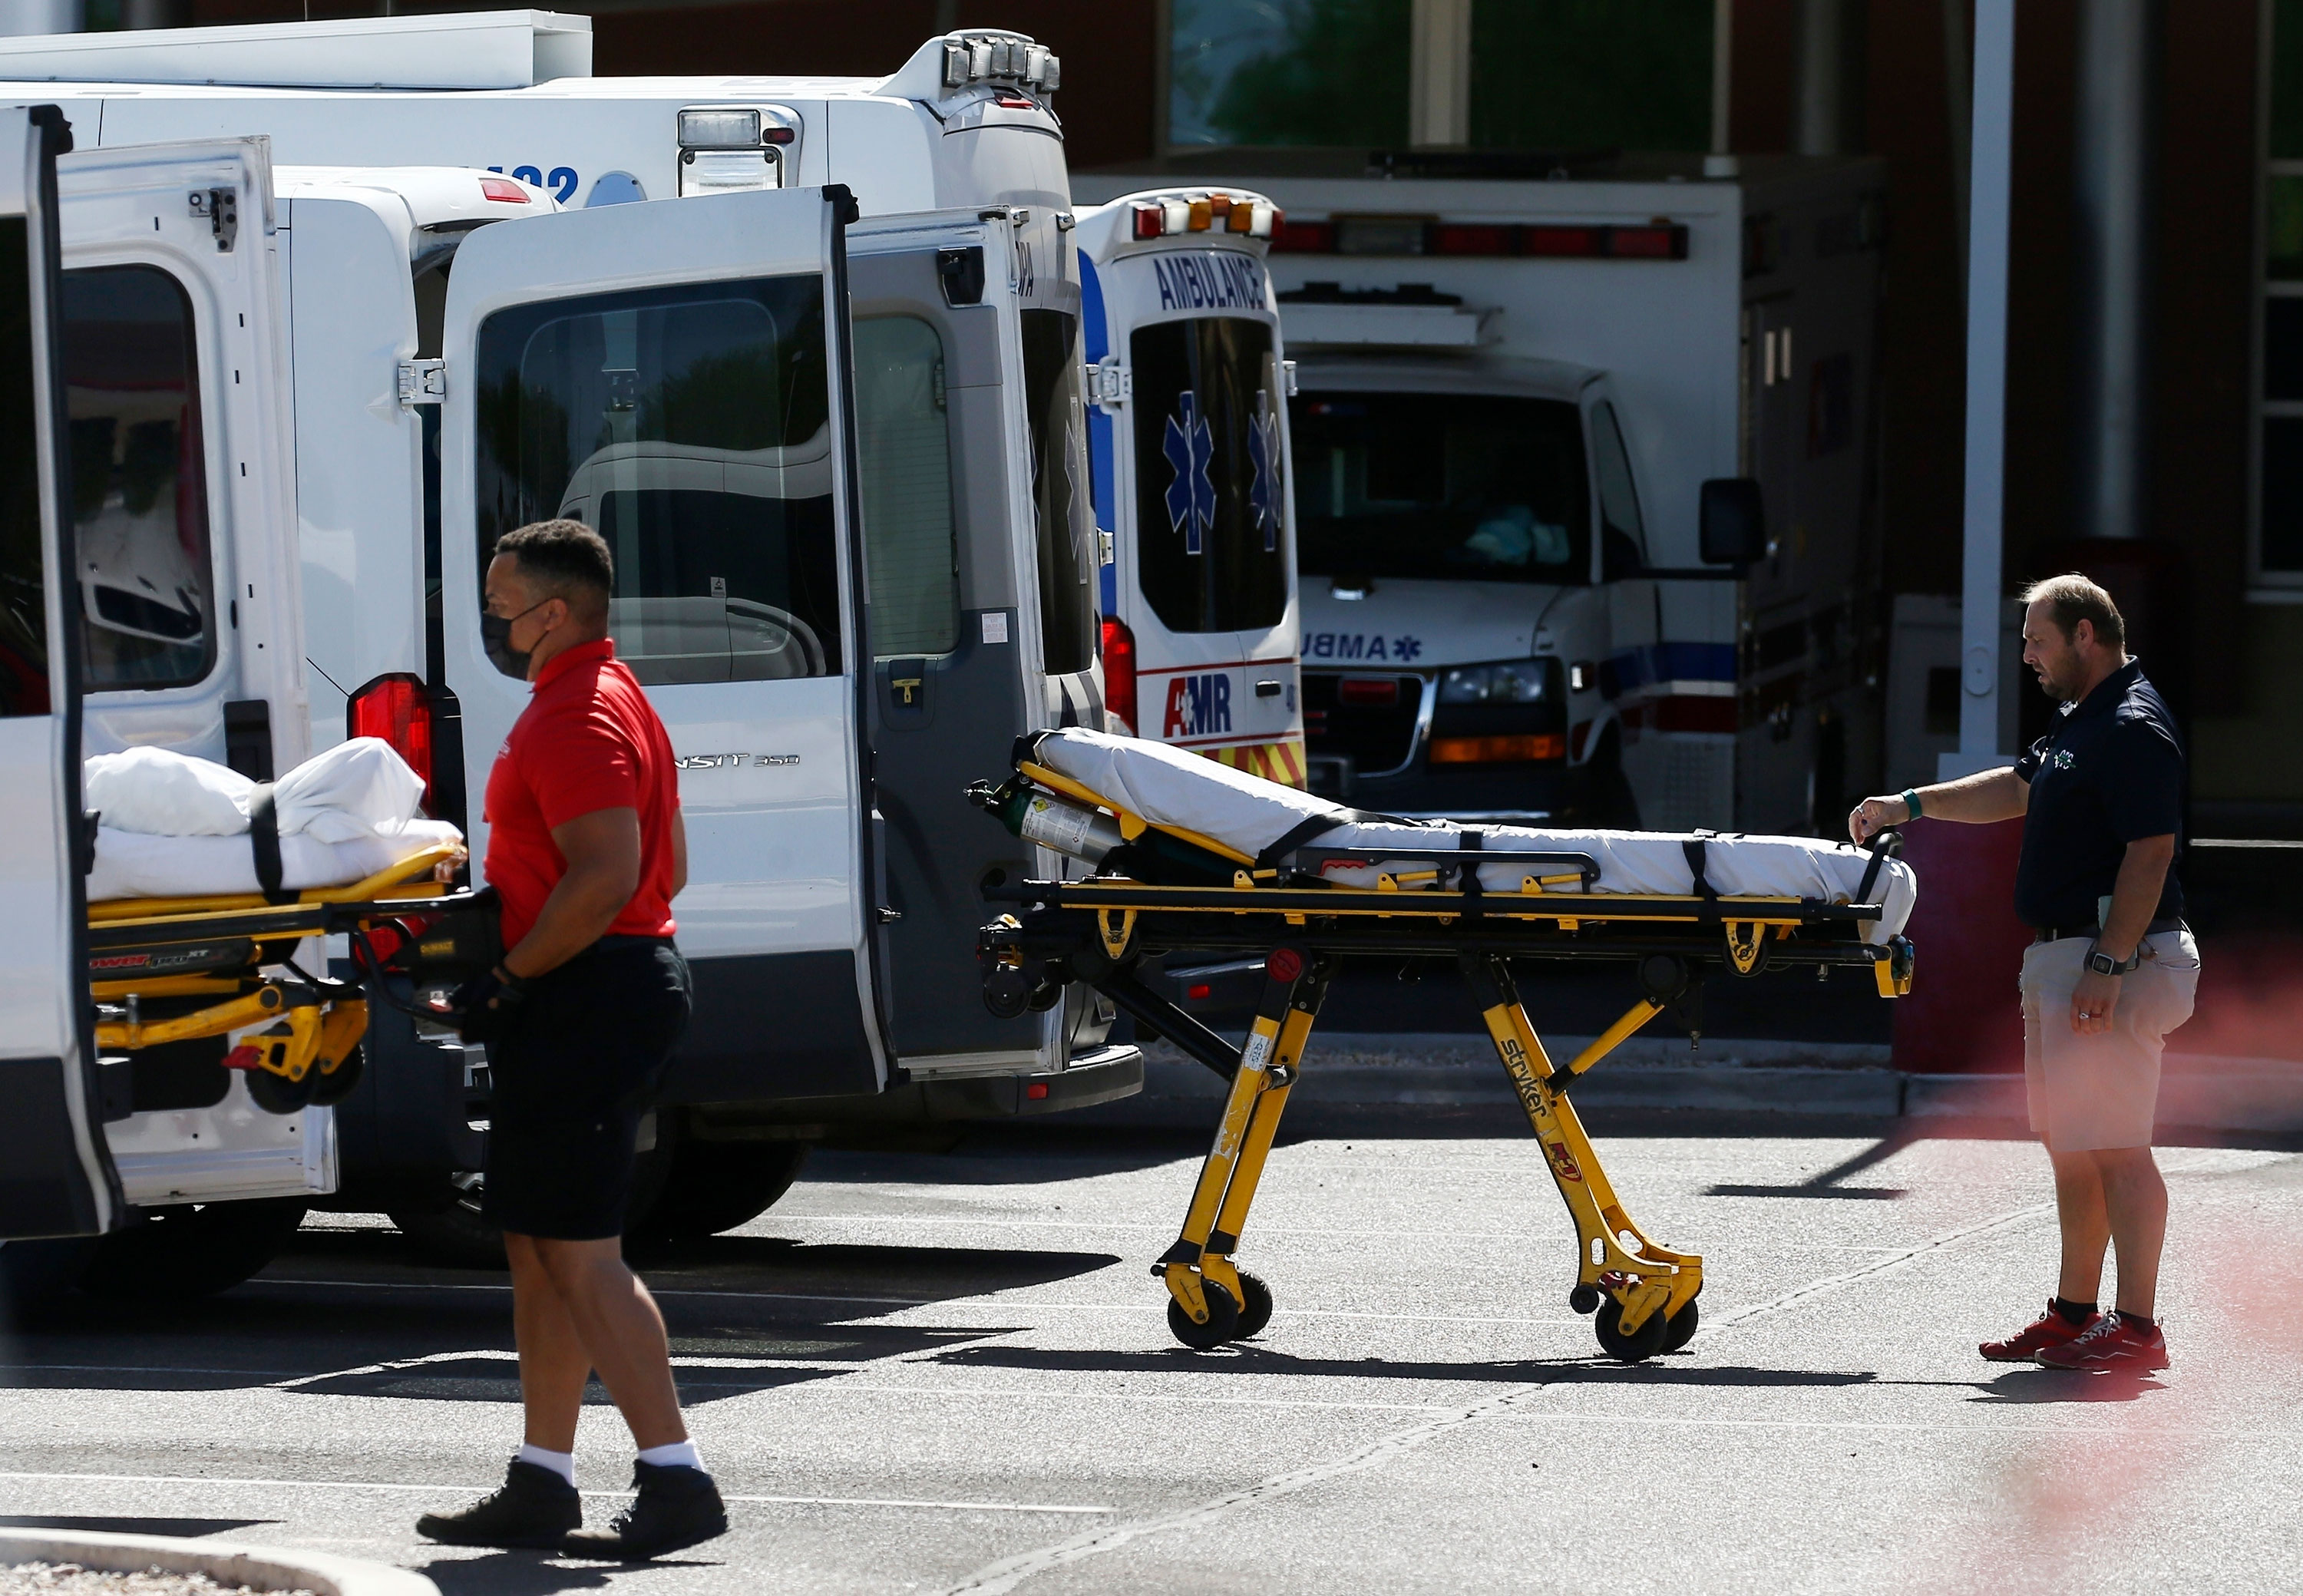 Ambulances are parked outside the emergency room entrance at Banner Desert Medical Center, on June 16 in Mesa, Arizona.